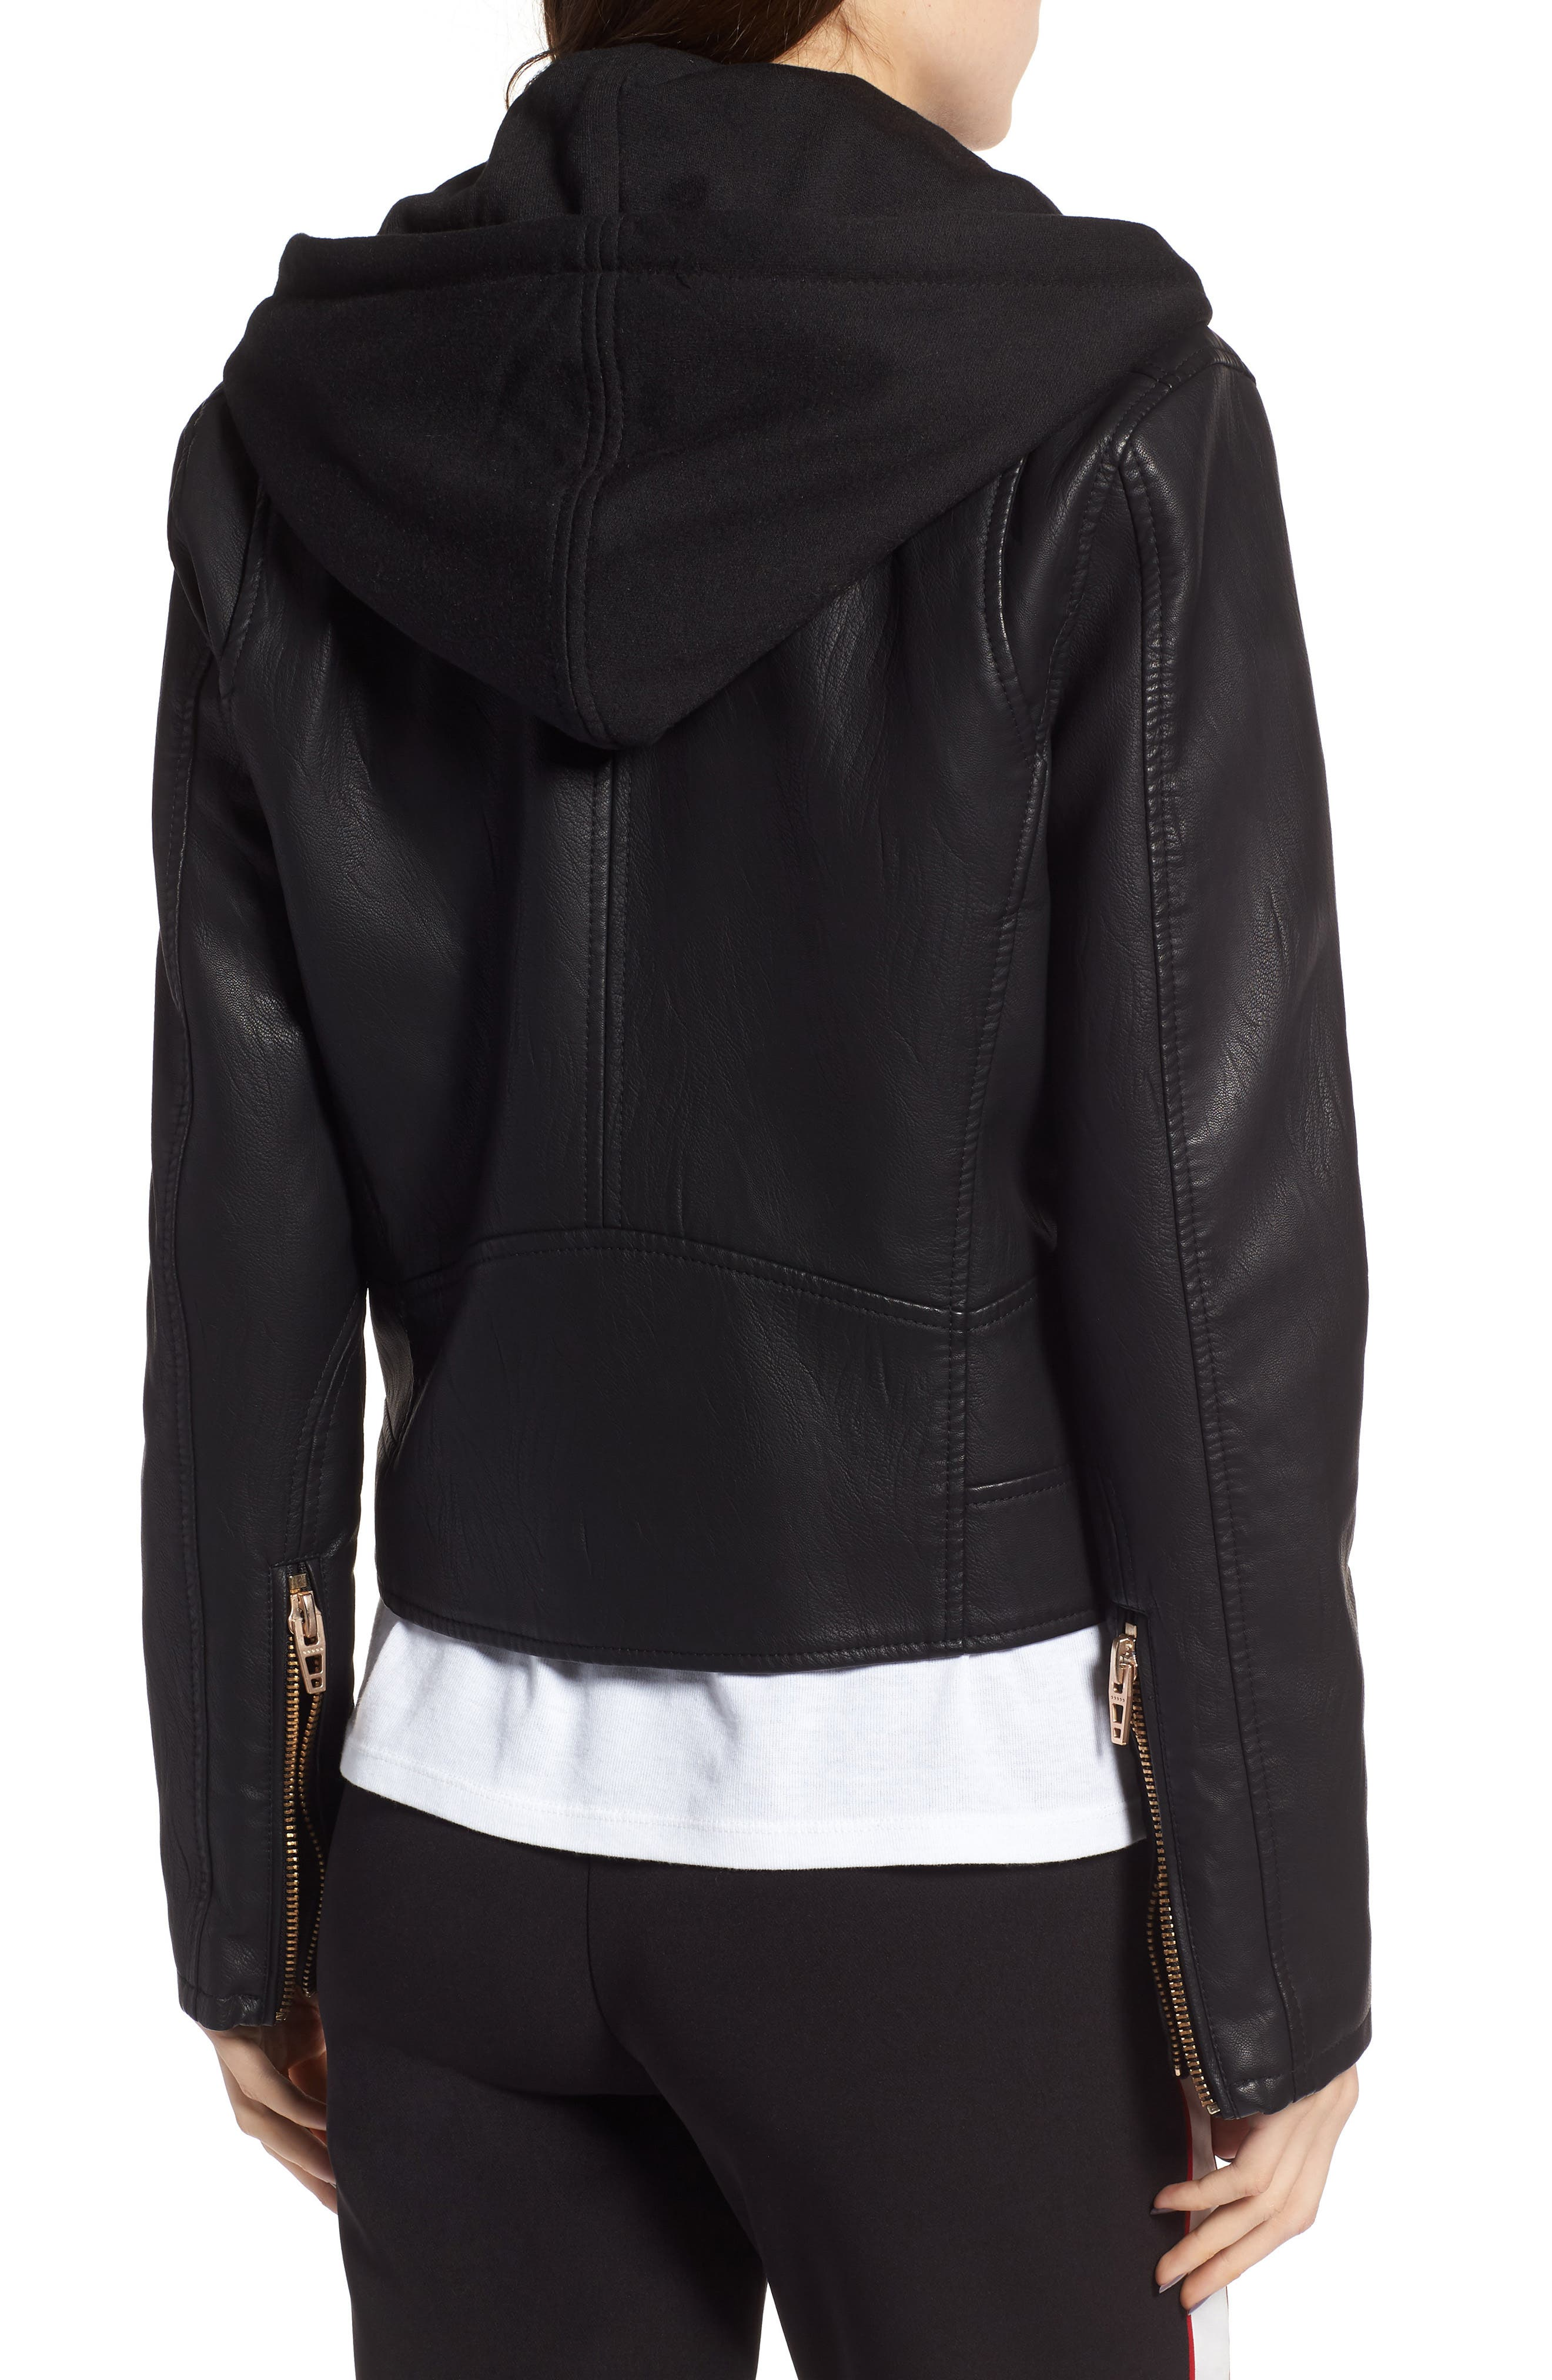 BLANKNYC, Meant to Be Moto Jacket with Removable Hood, Alternate thumbnail 2, color, BLACK